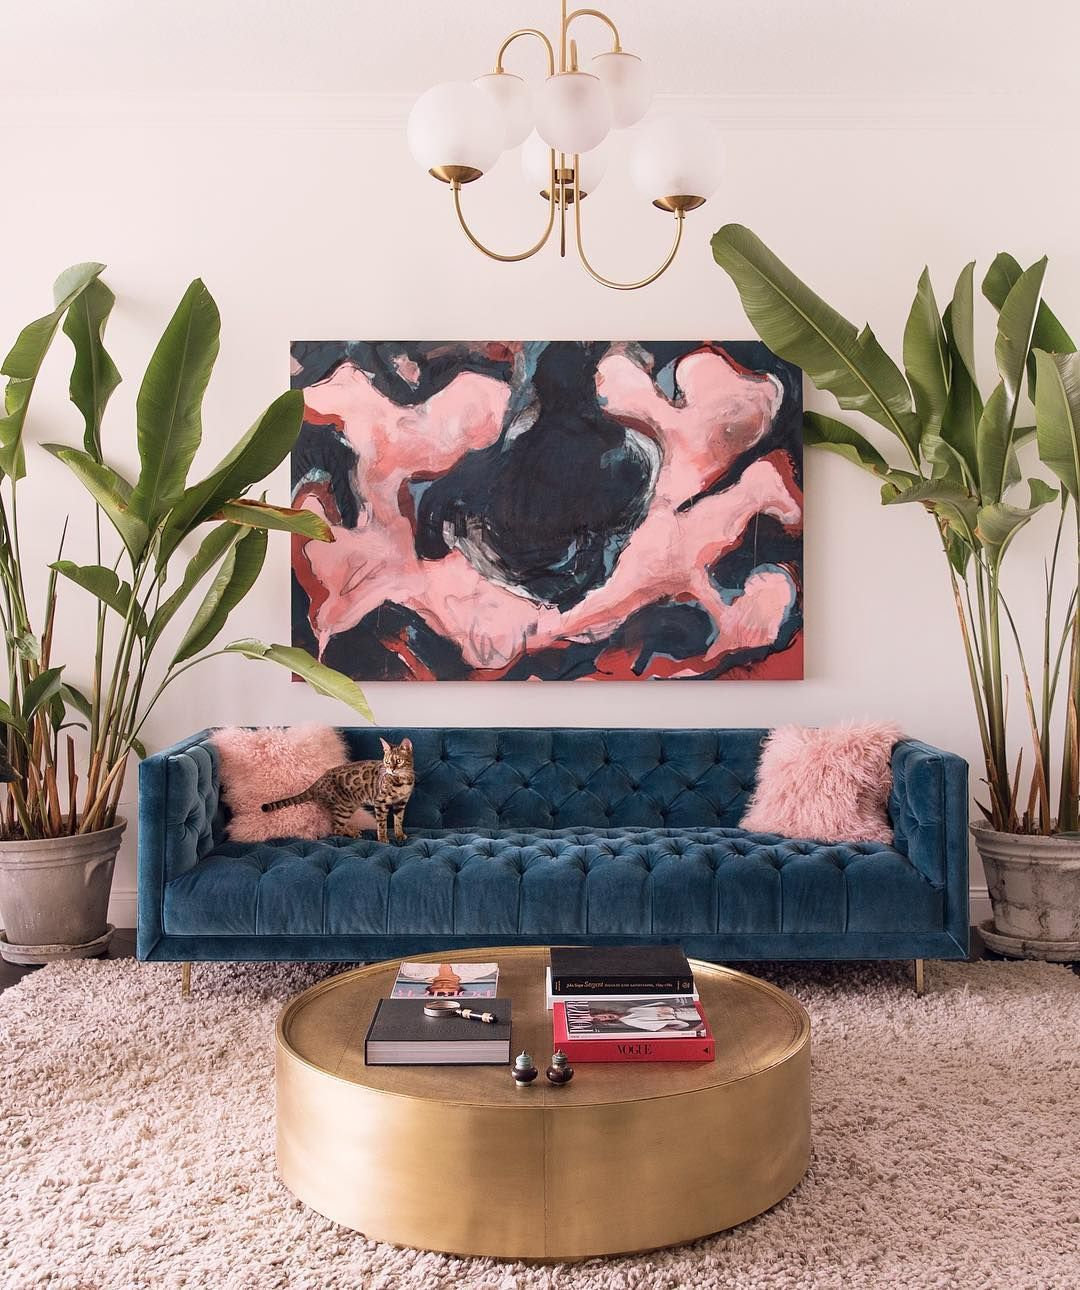 Photo of 9 Living Rooms You'll Fall in Love With on Instagram